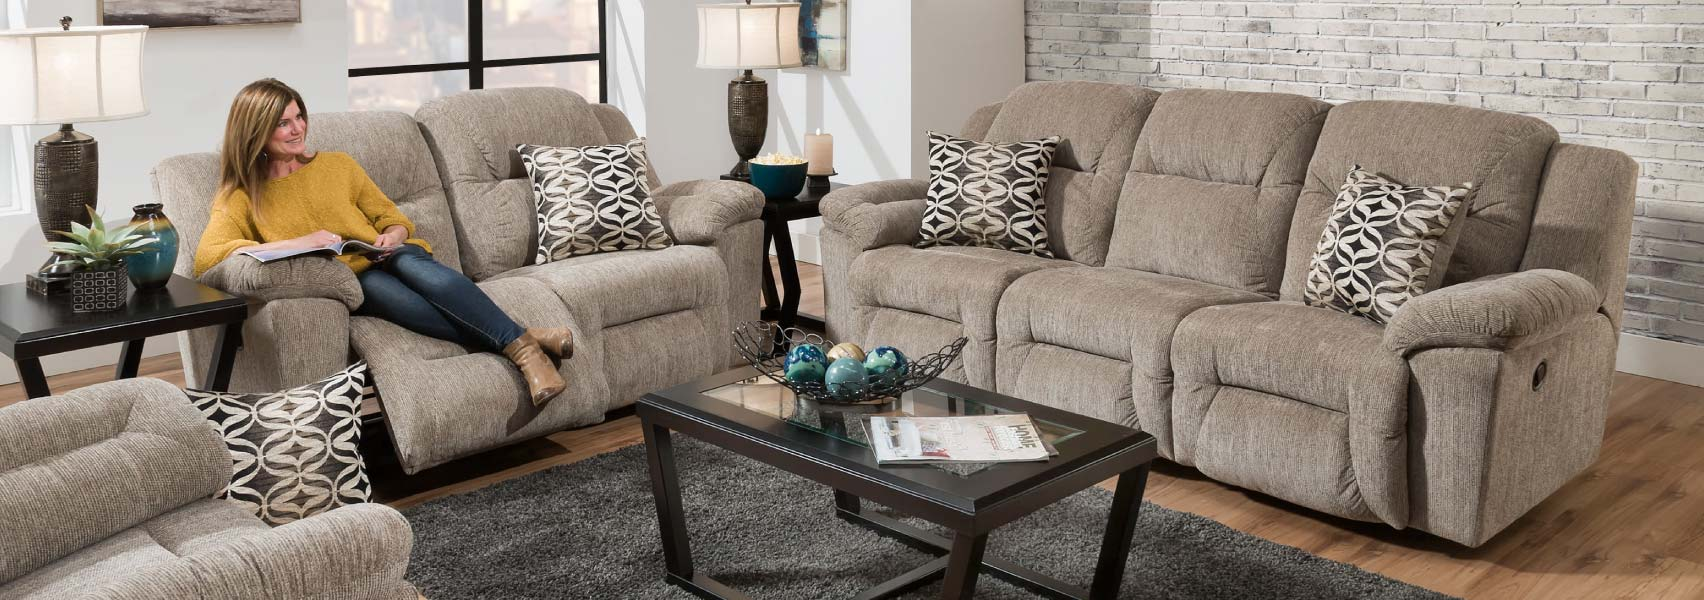 Sofas For Sale Pay Monthly Epic Sale On Living Room Furniture | Gardner-white